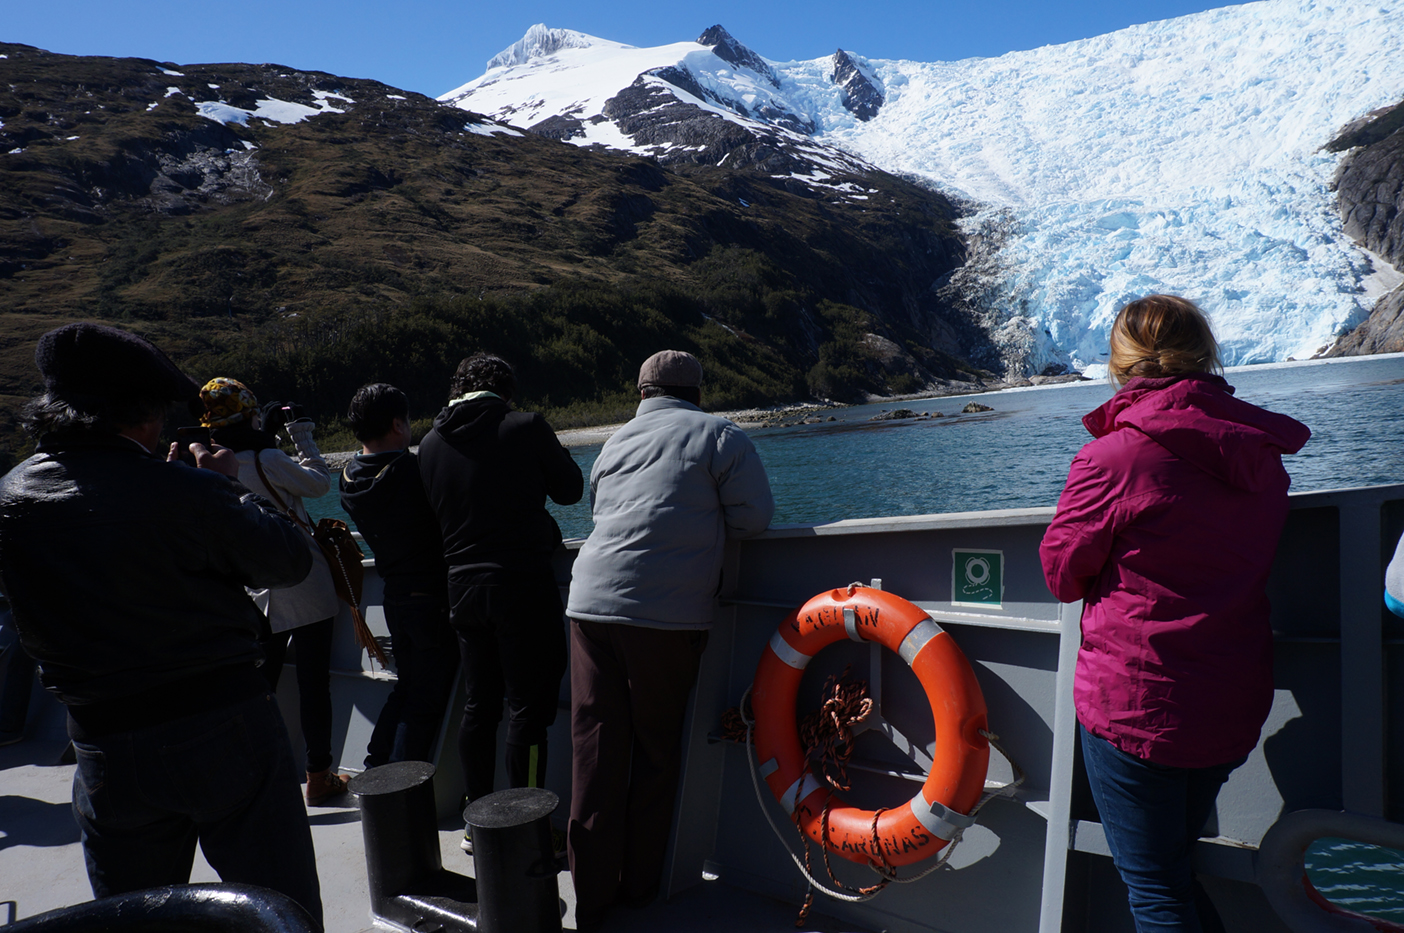 Very impressive glacial wall and dolphin show :)